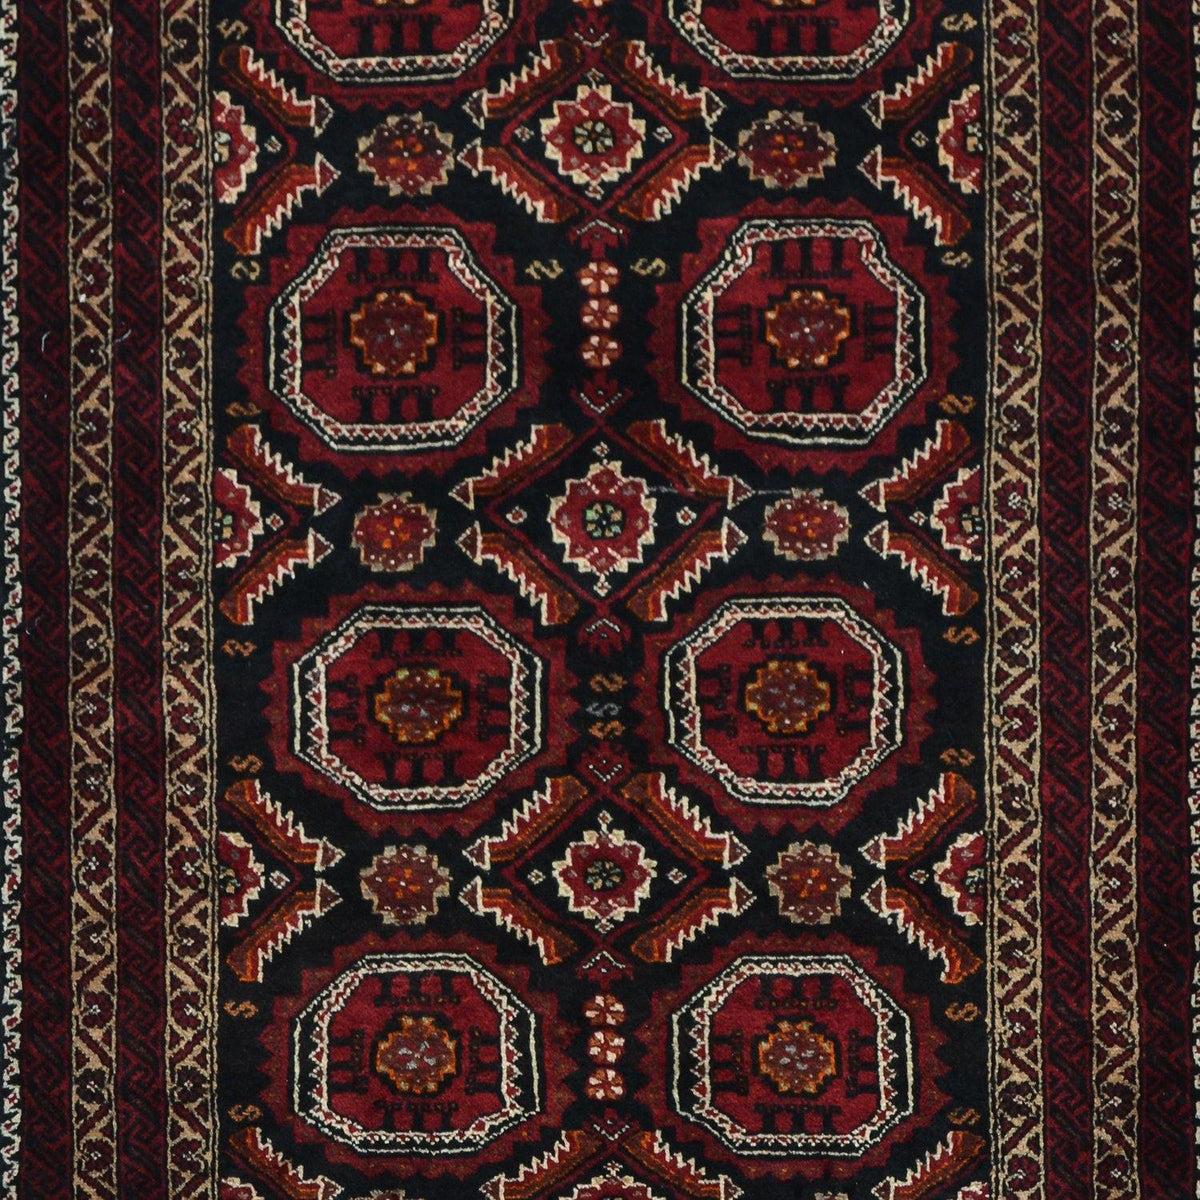 Fine Hand-knotted Wool Baluchi Persian Rug 98cm x 192cm